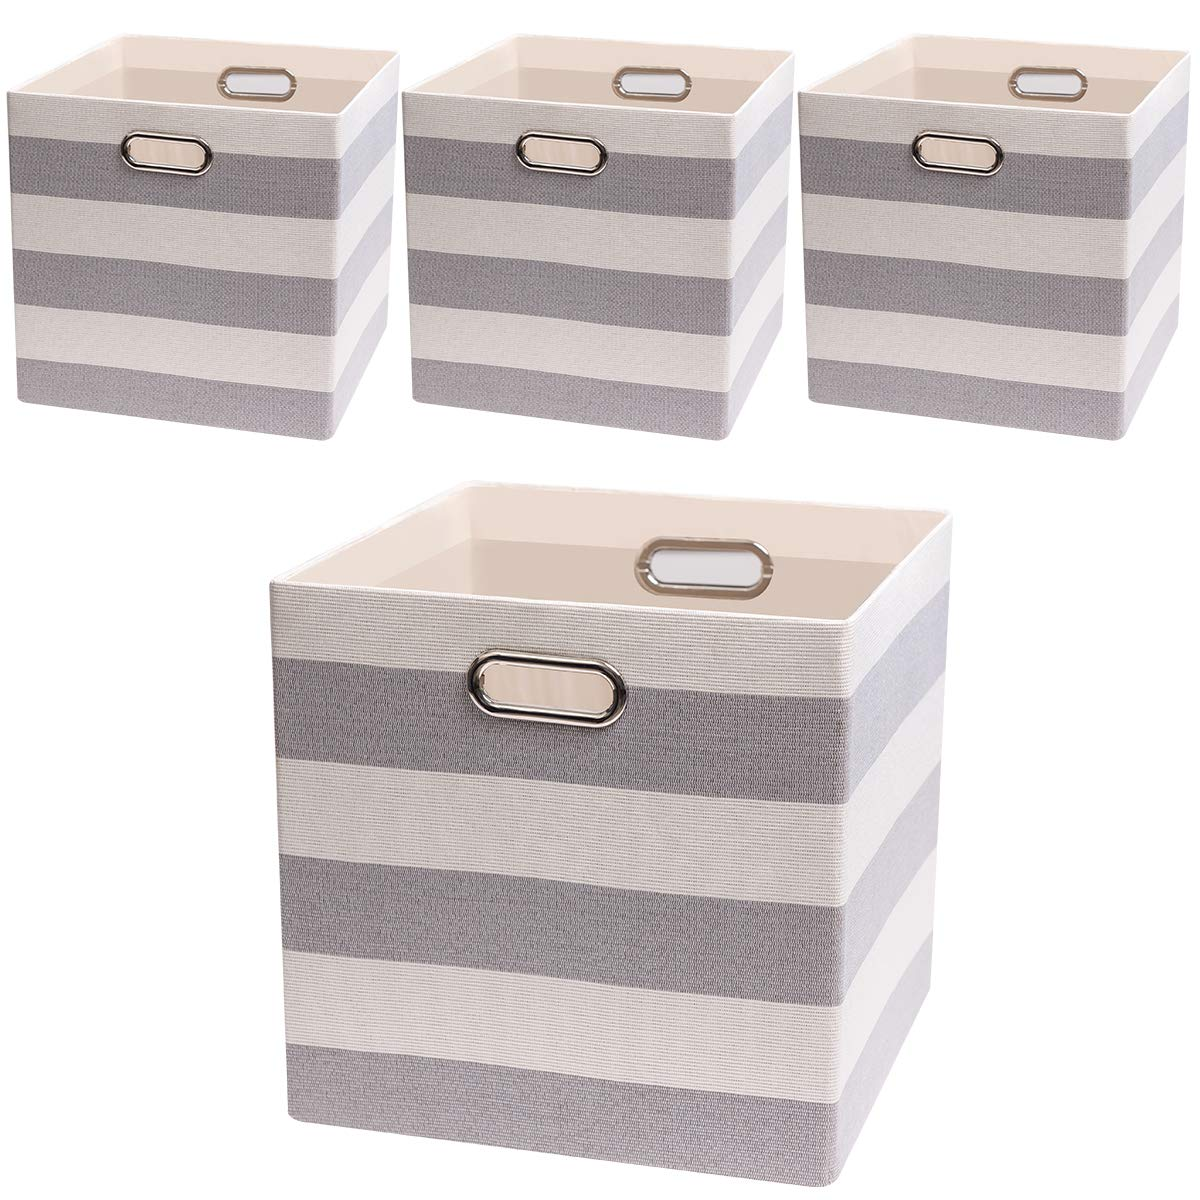 Posprica Large Collapsible Storage Bins Boxes Cubes Basket Containers Drawers for Nurseries,Offices,Closets,Home Décor - 13''×13'',4pcs,Grey/Beige Stripes